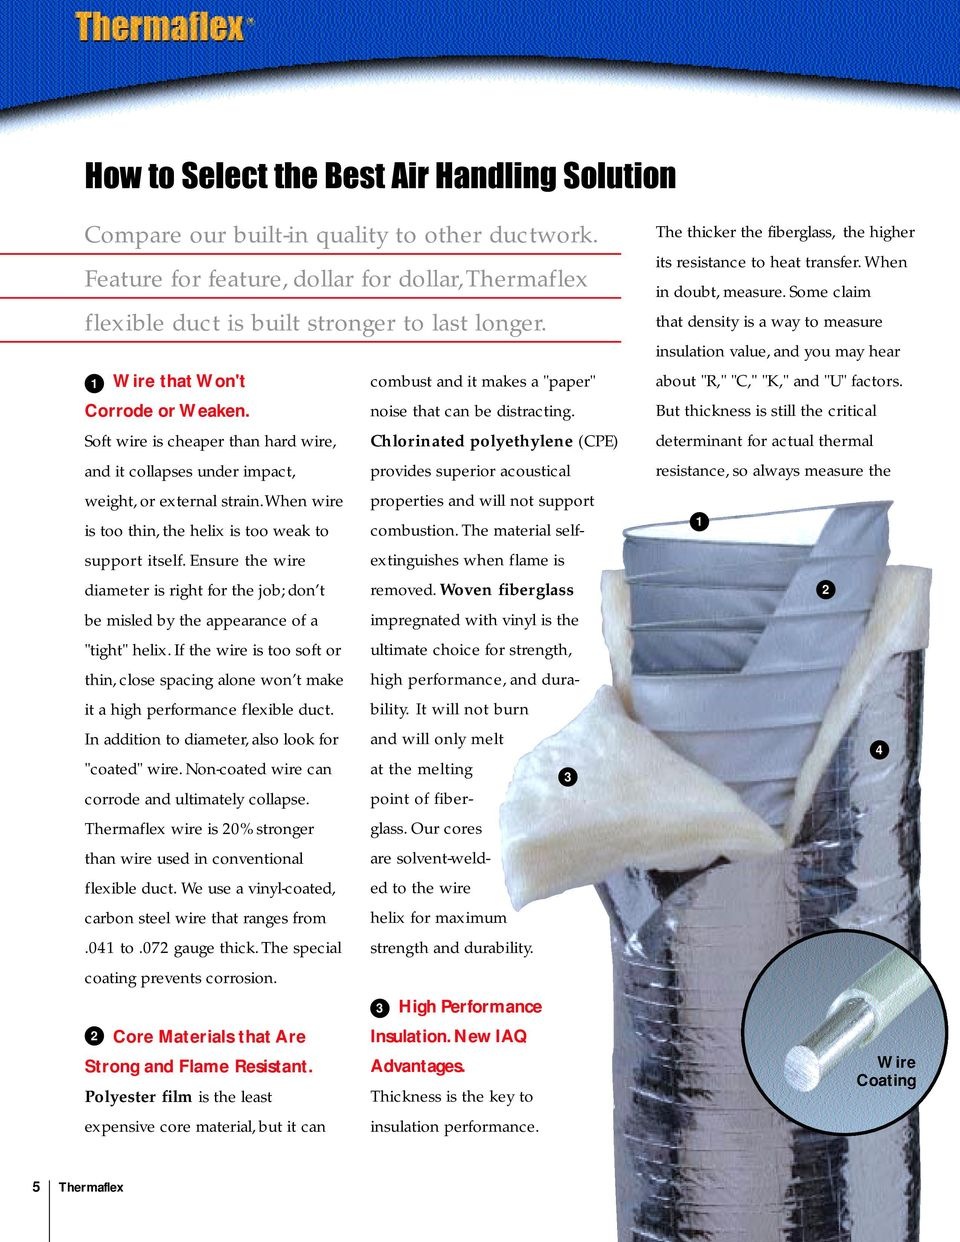 Thermaflex  The Contractors' Choice in Flexible Duct for HVAC